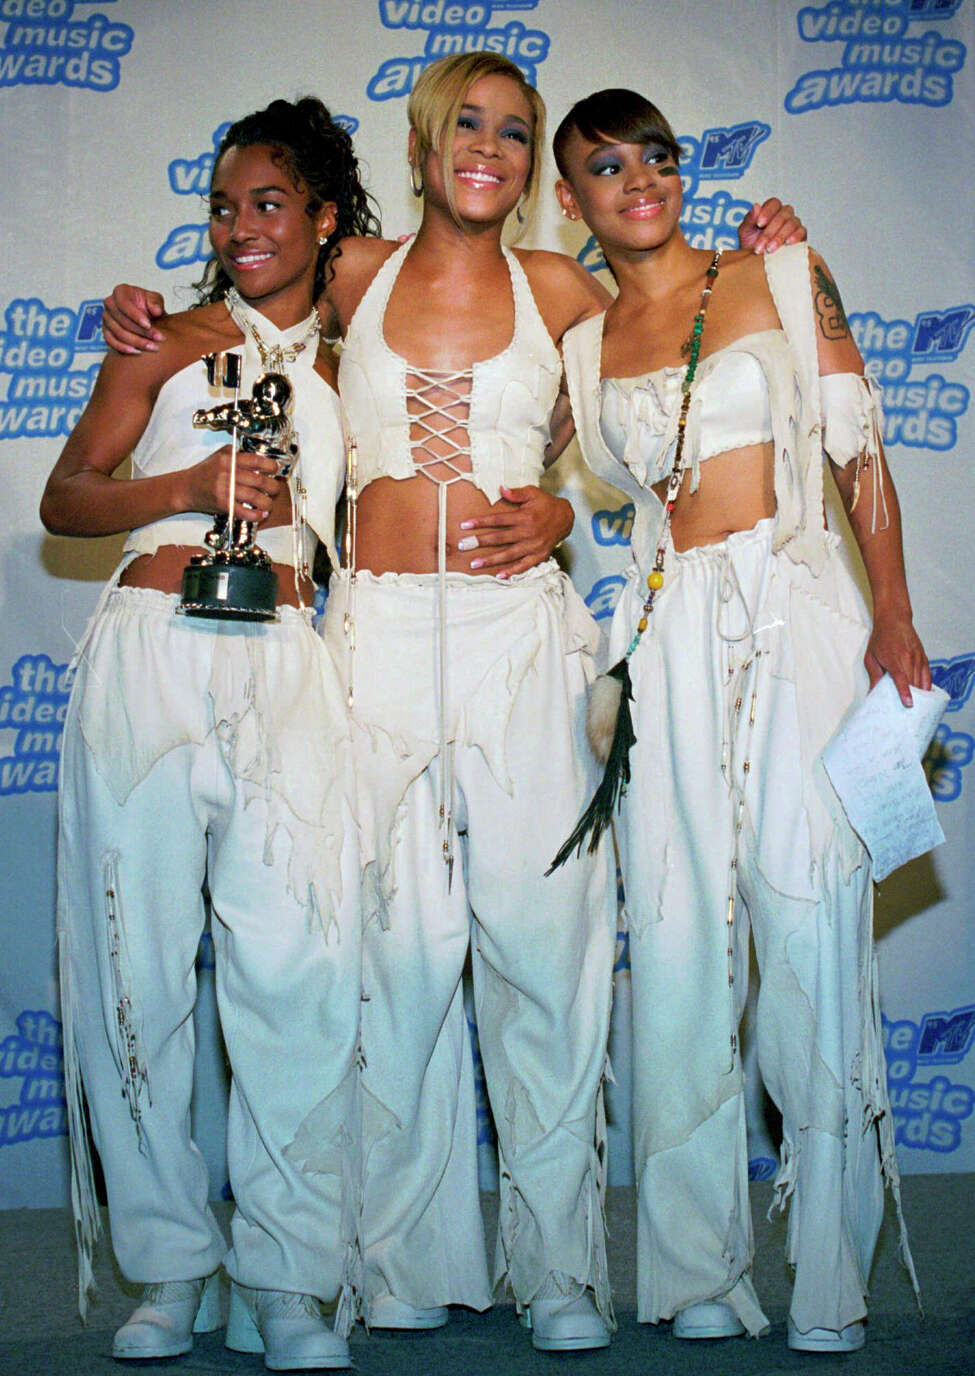 FILE - In this Sept. 7, 1995 file photo, the band TLC, from left, Rozanda